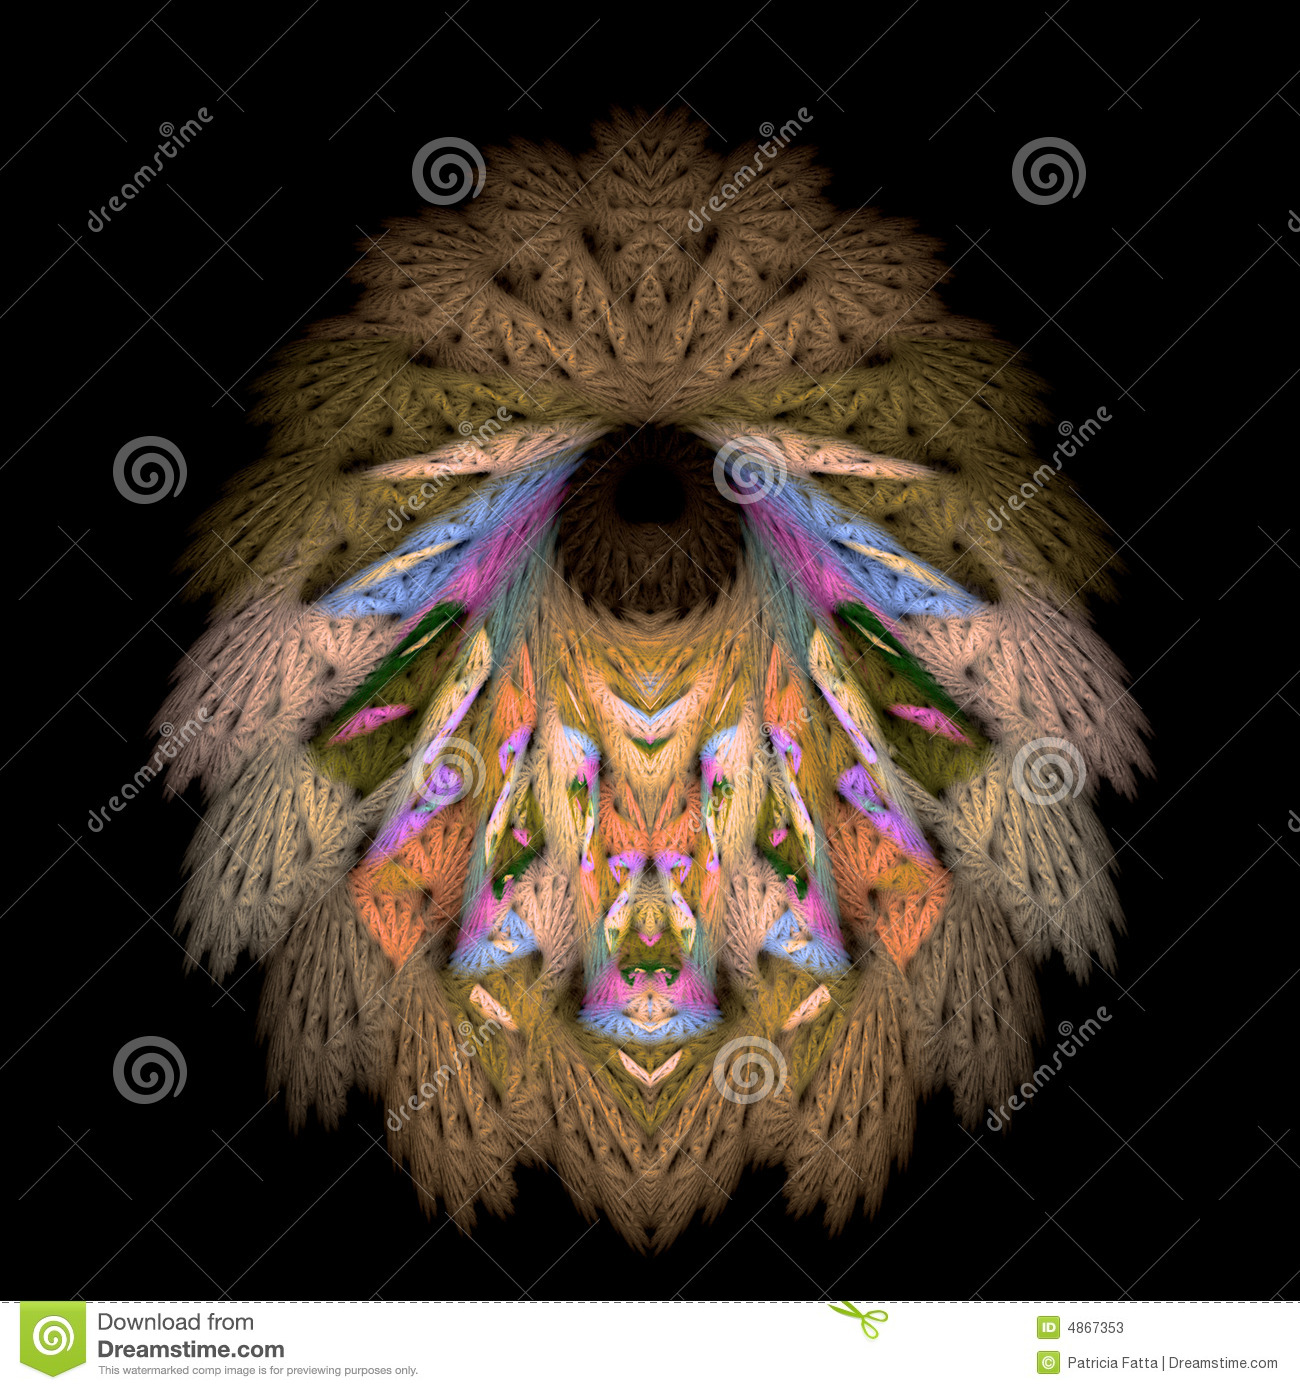 native american mask royalty free stock image image 31106